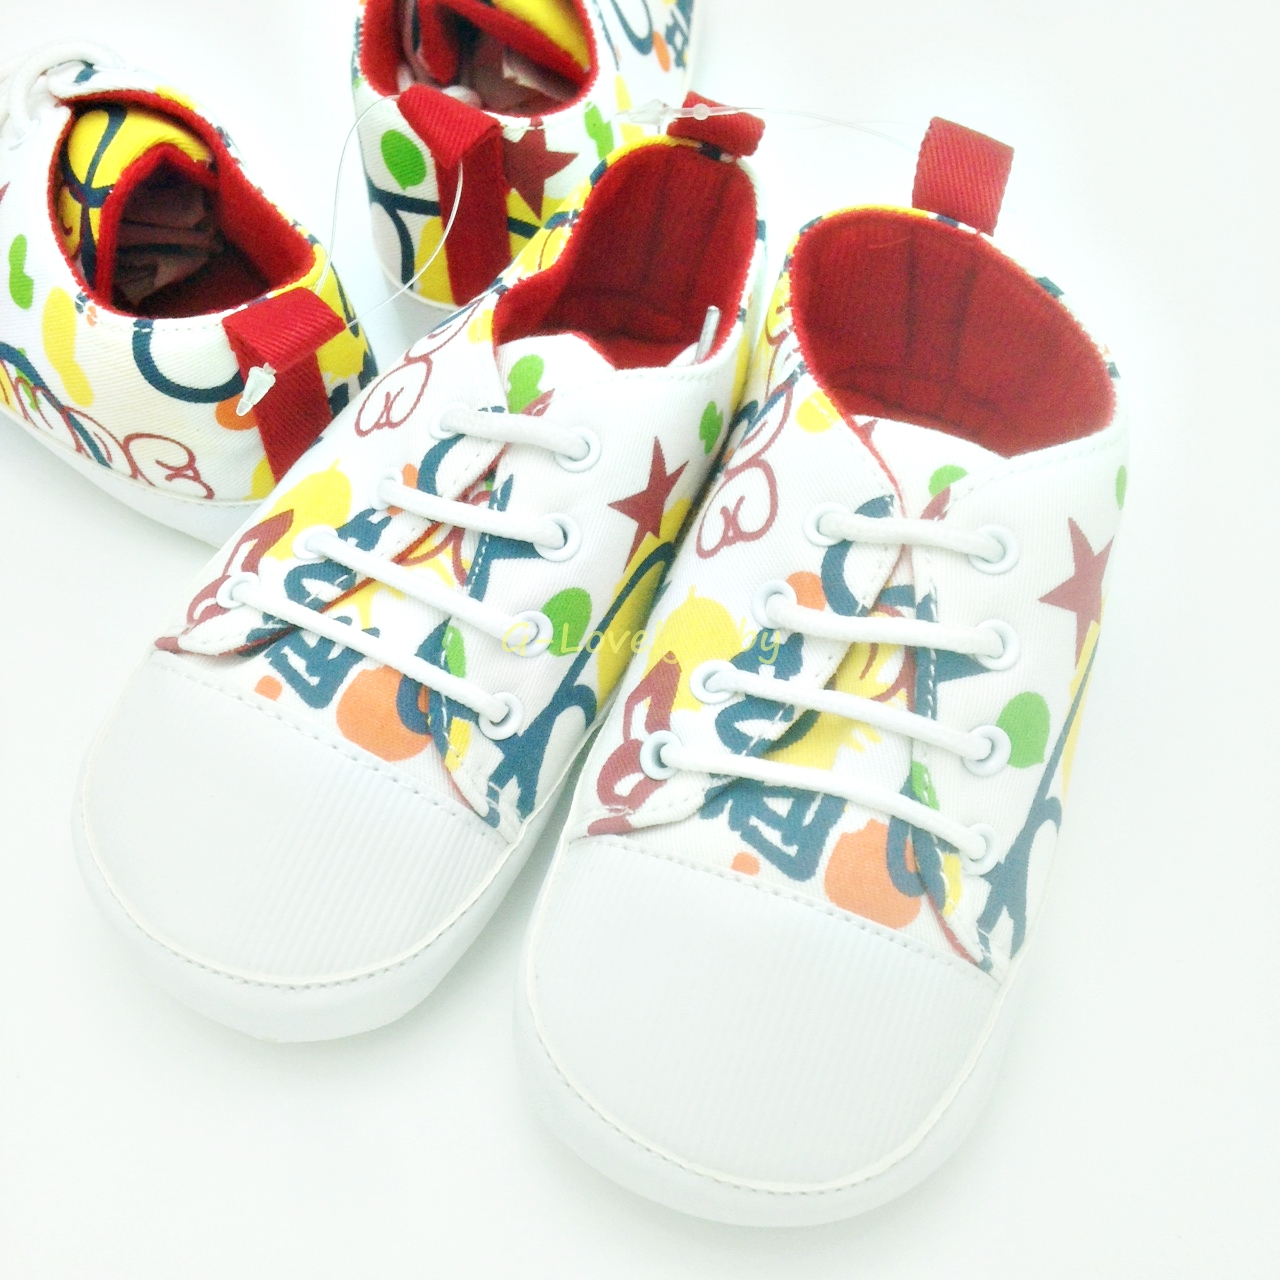 Pre-walker Baby Shoes รองเท้าเด็ก รองเท้าเด็กหญิง รองเท้าเด็กชาย รองเท้าเด็กวัยหัดเดิน size 4 (18-24m)